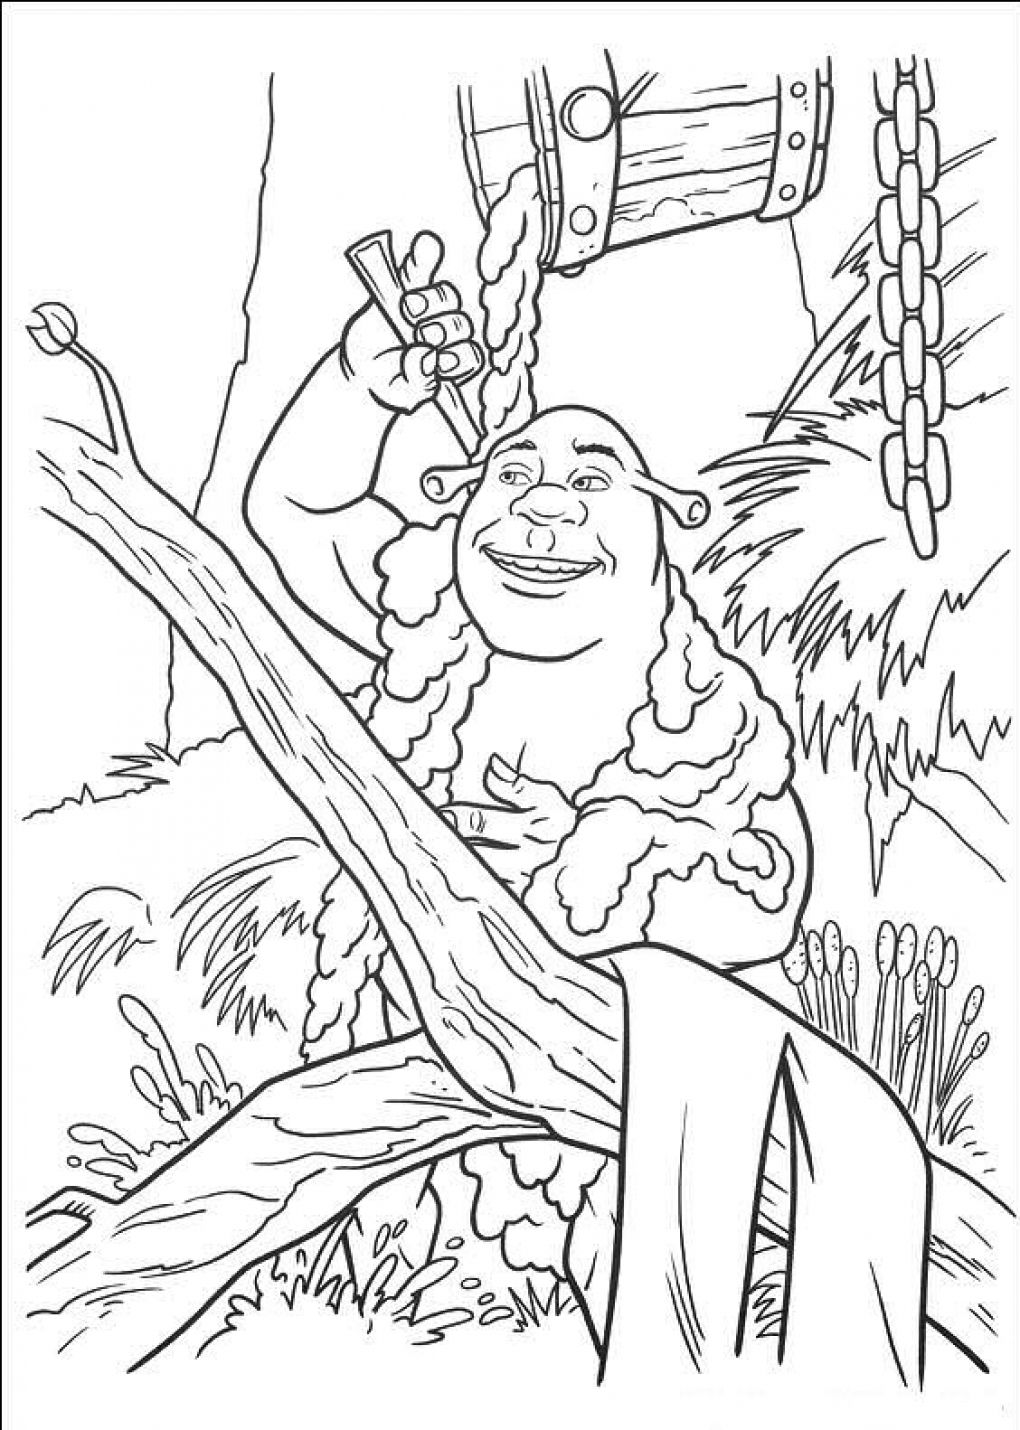 Shrek the Third coloring pages on Coloring-Book.info | 1430x1020